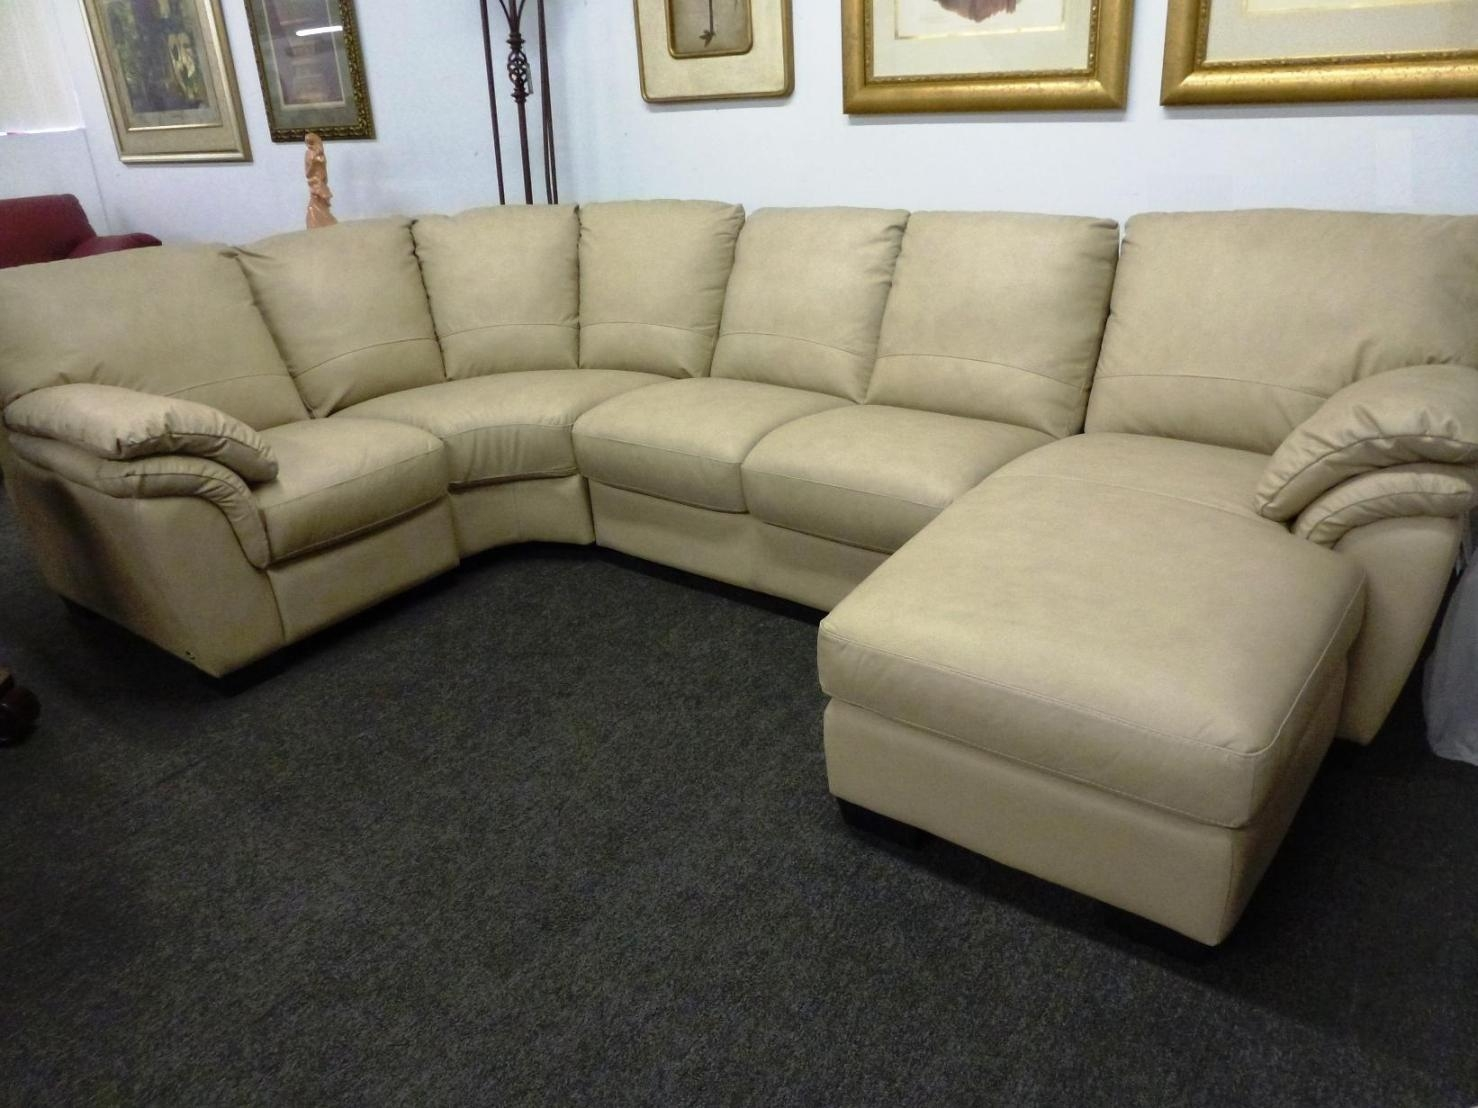 Sofa & Couch: Sectional Couches For Sale To Fit Your Living Room Regarding Cream Sectional Leather Sofas (View 13 of 22)